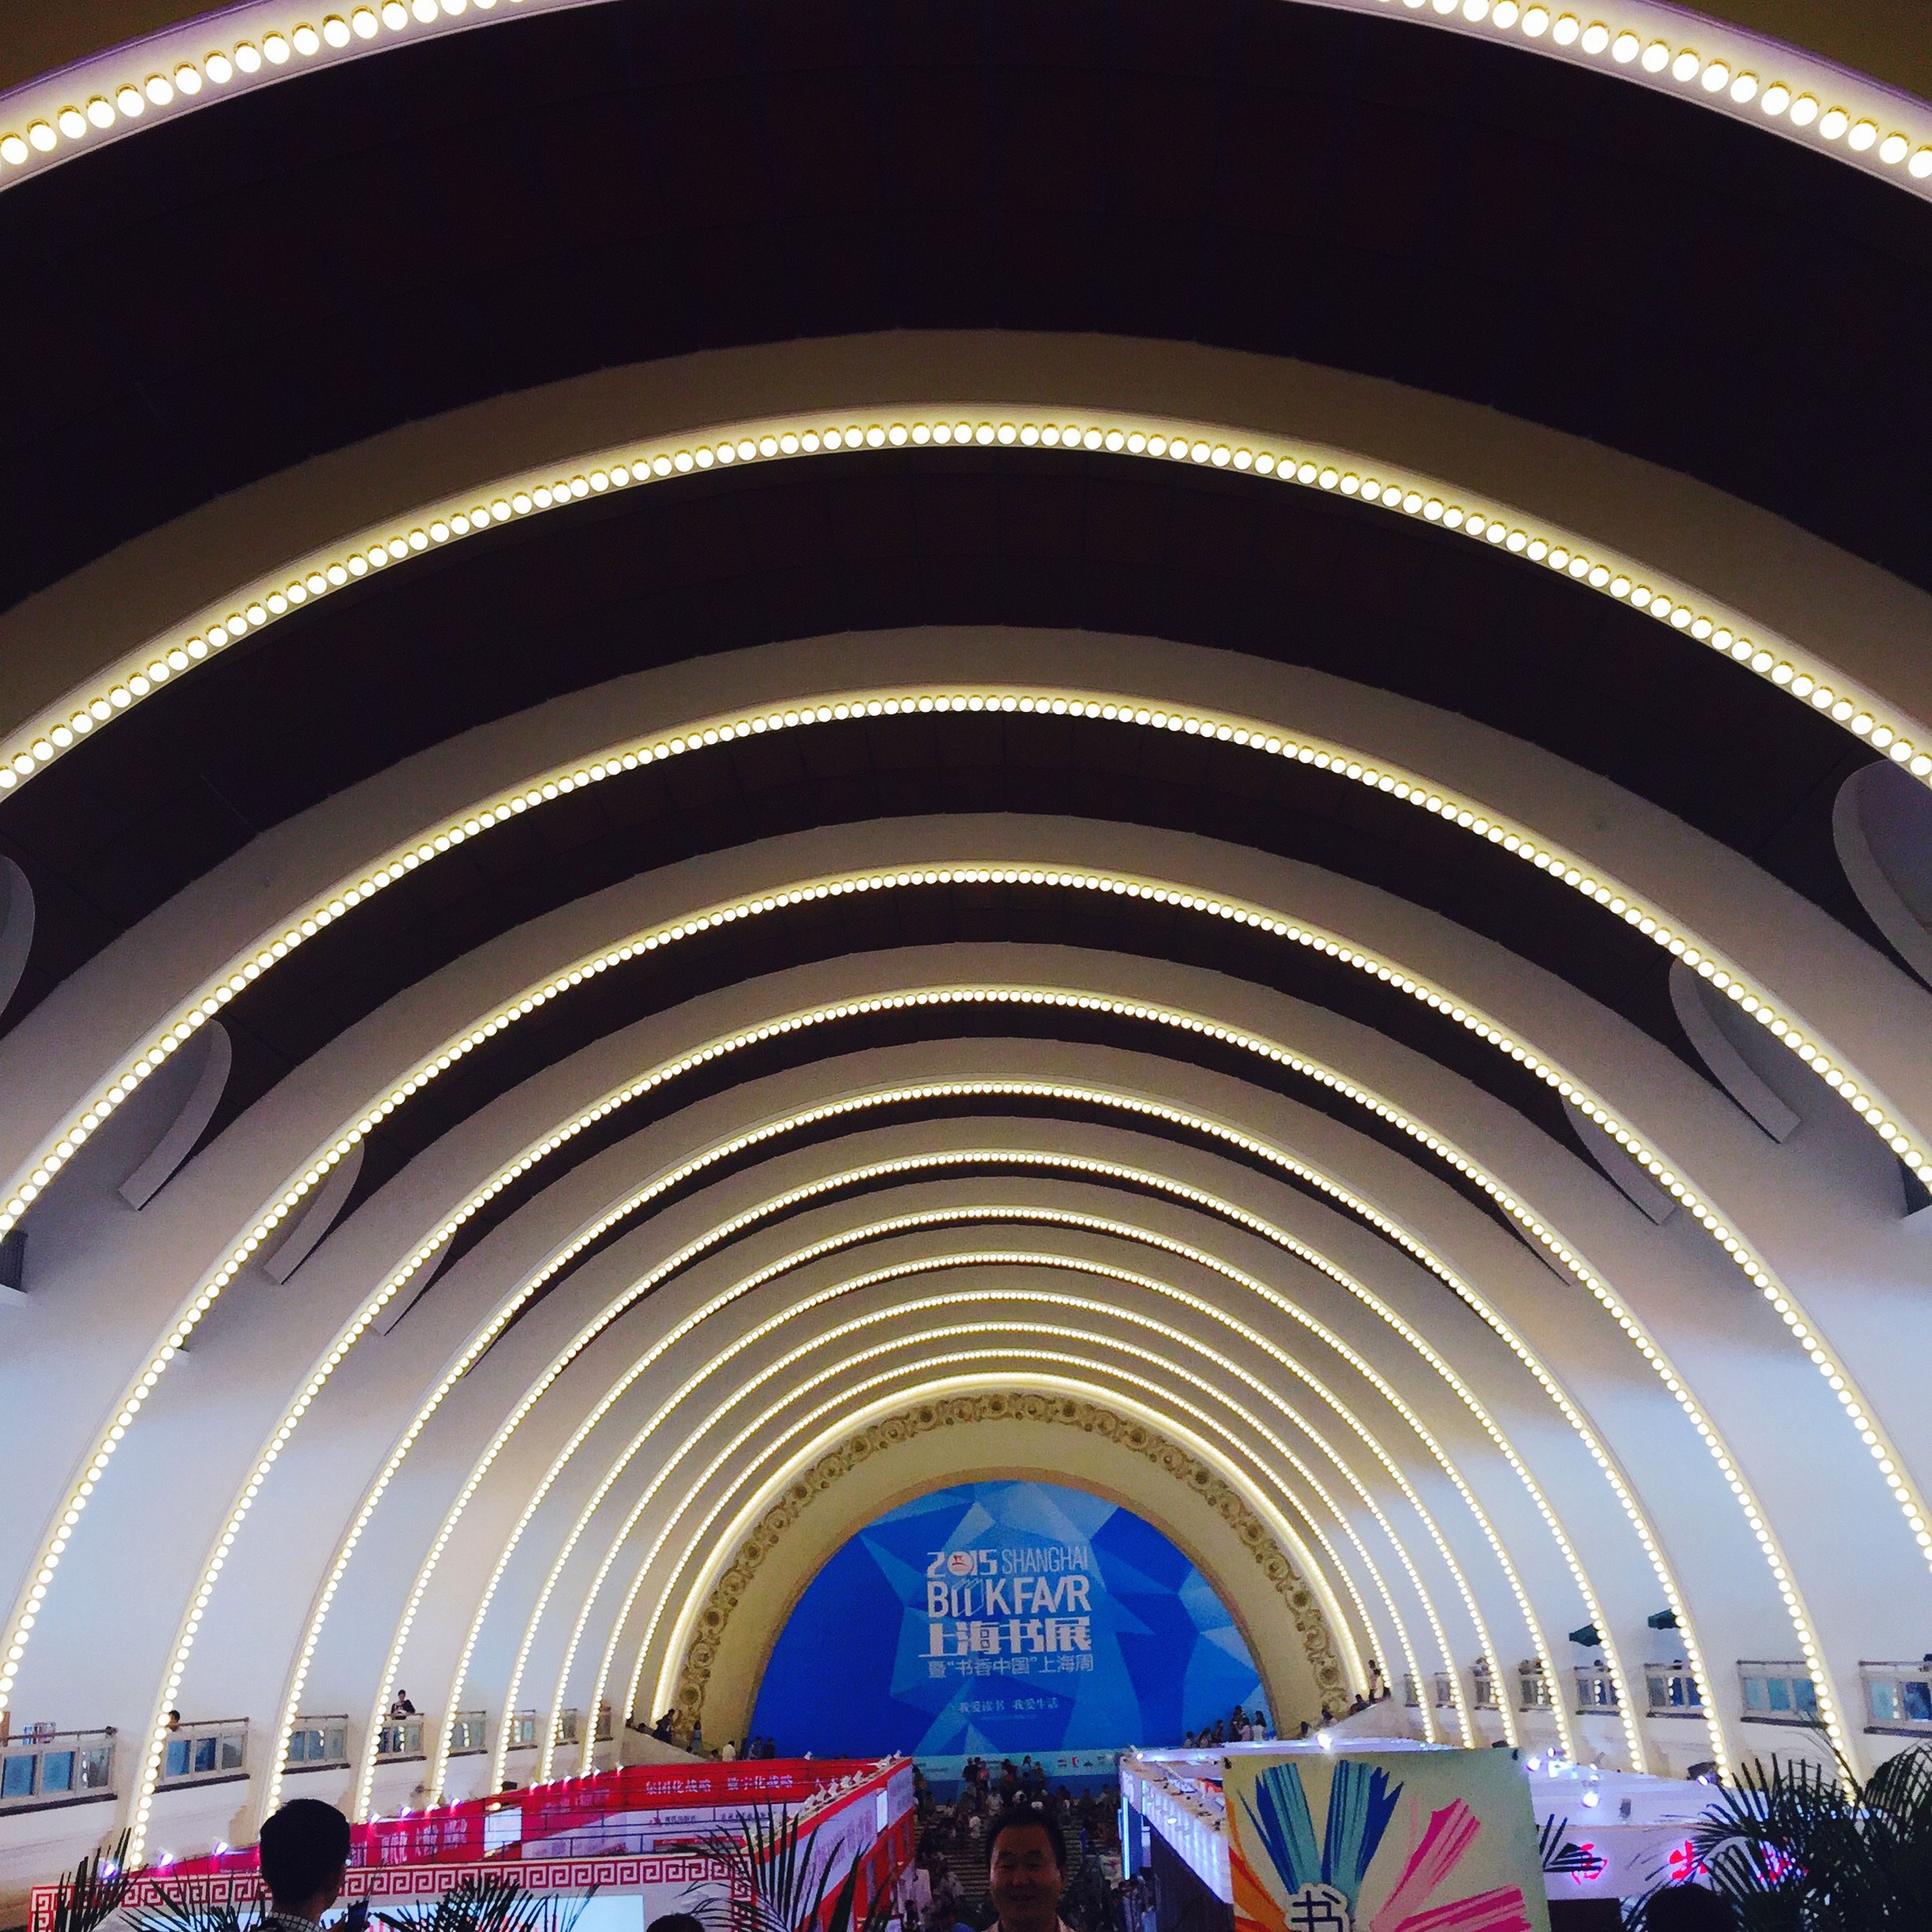 indoors, arch, architecture, built structure, large group of people, person, men, travel, lifestyles, modern, illuminated, low angle view, ceiling, leisure activity, transportation, escalator, travel destinations, incidental people, steps